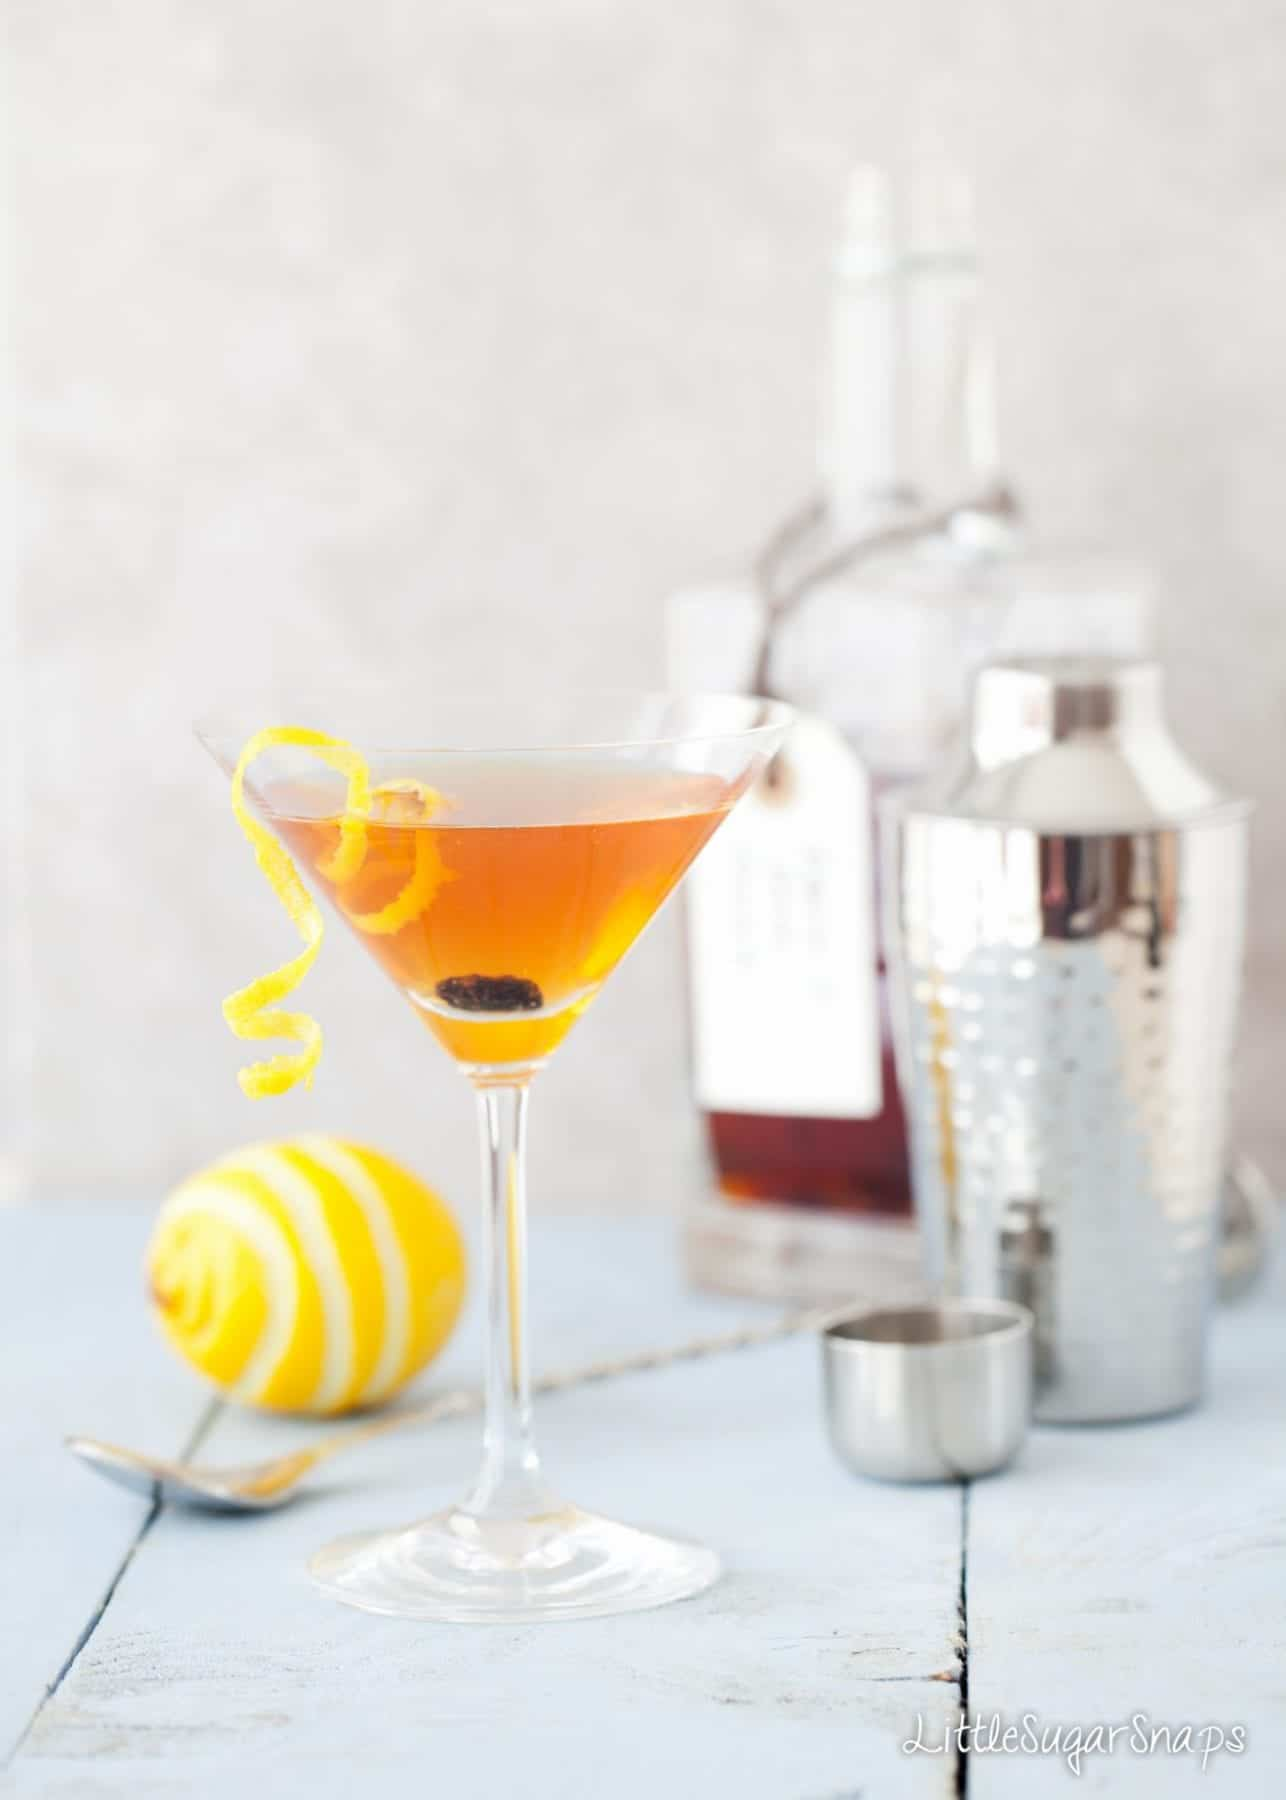 Hot Cross Bun Easter martini decorated with a lemon zest and raisins.